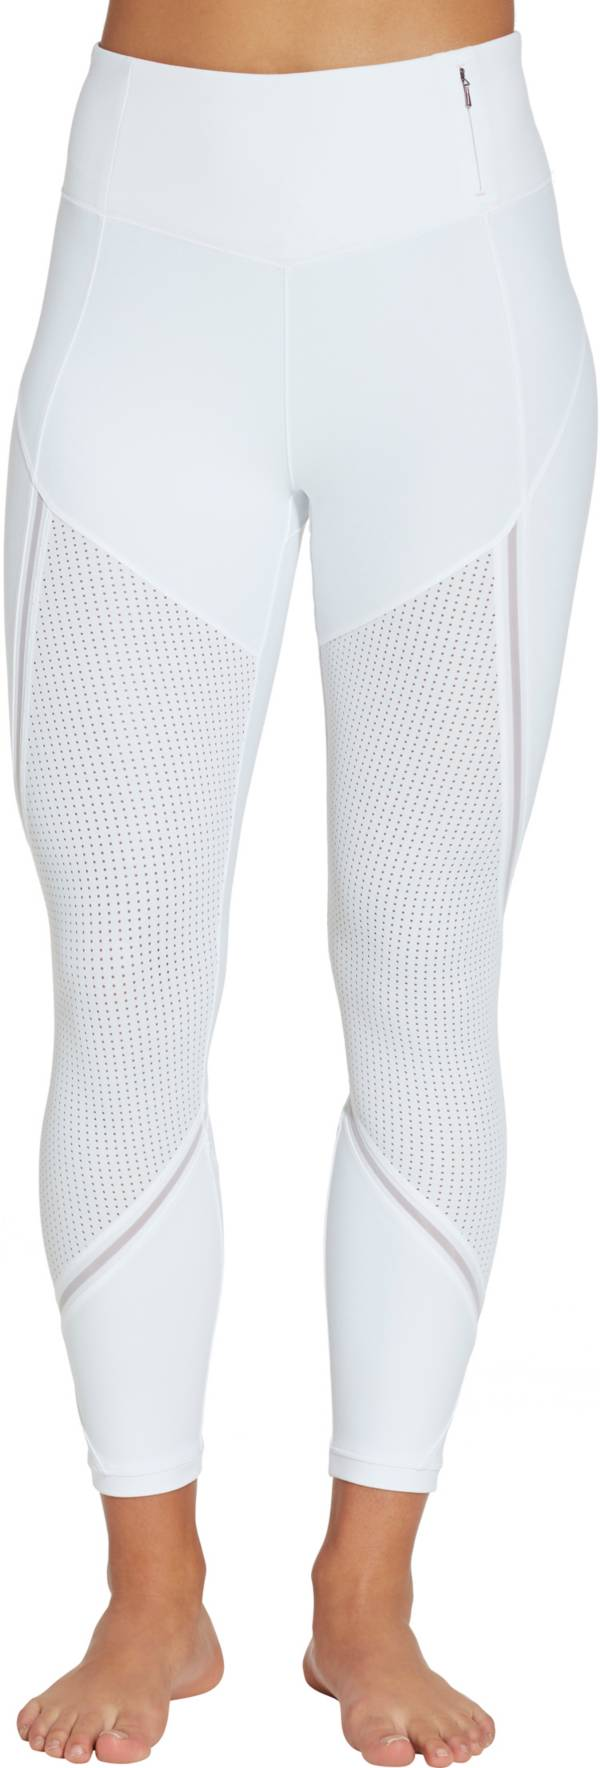 CALIA by Carrie Underwood Women's Essential Mesh 7/8 Leggings product image